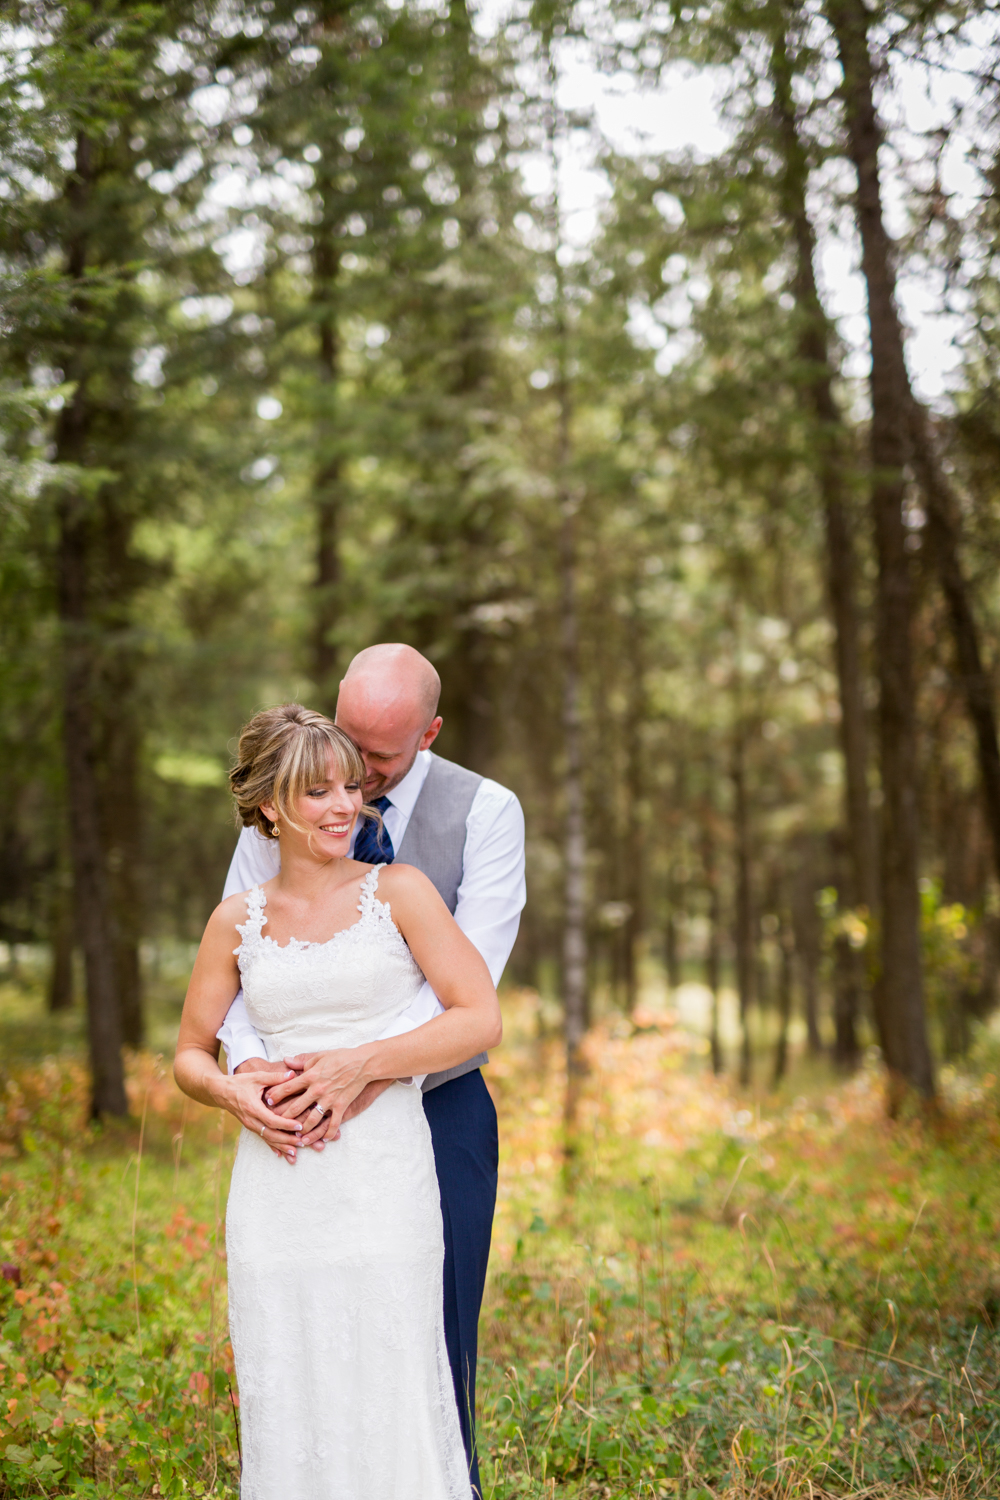 5 Common Misconceptions About Wedding Photography with Looyenga Photography